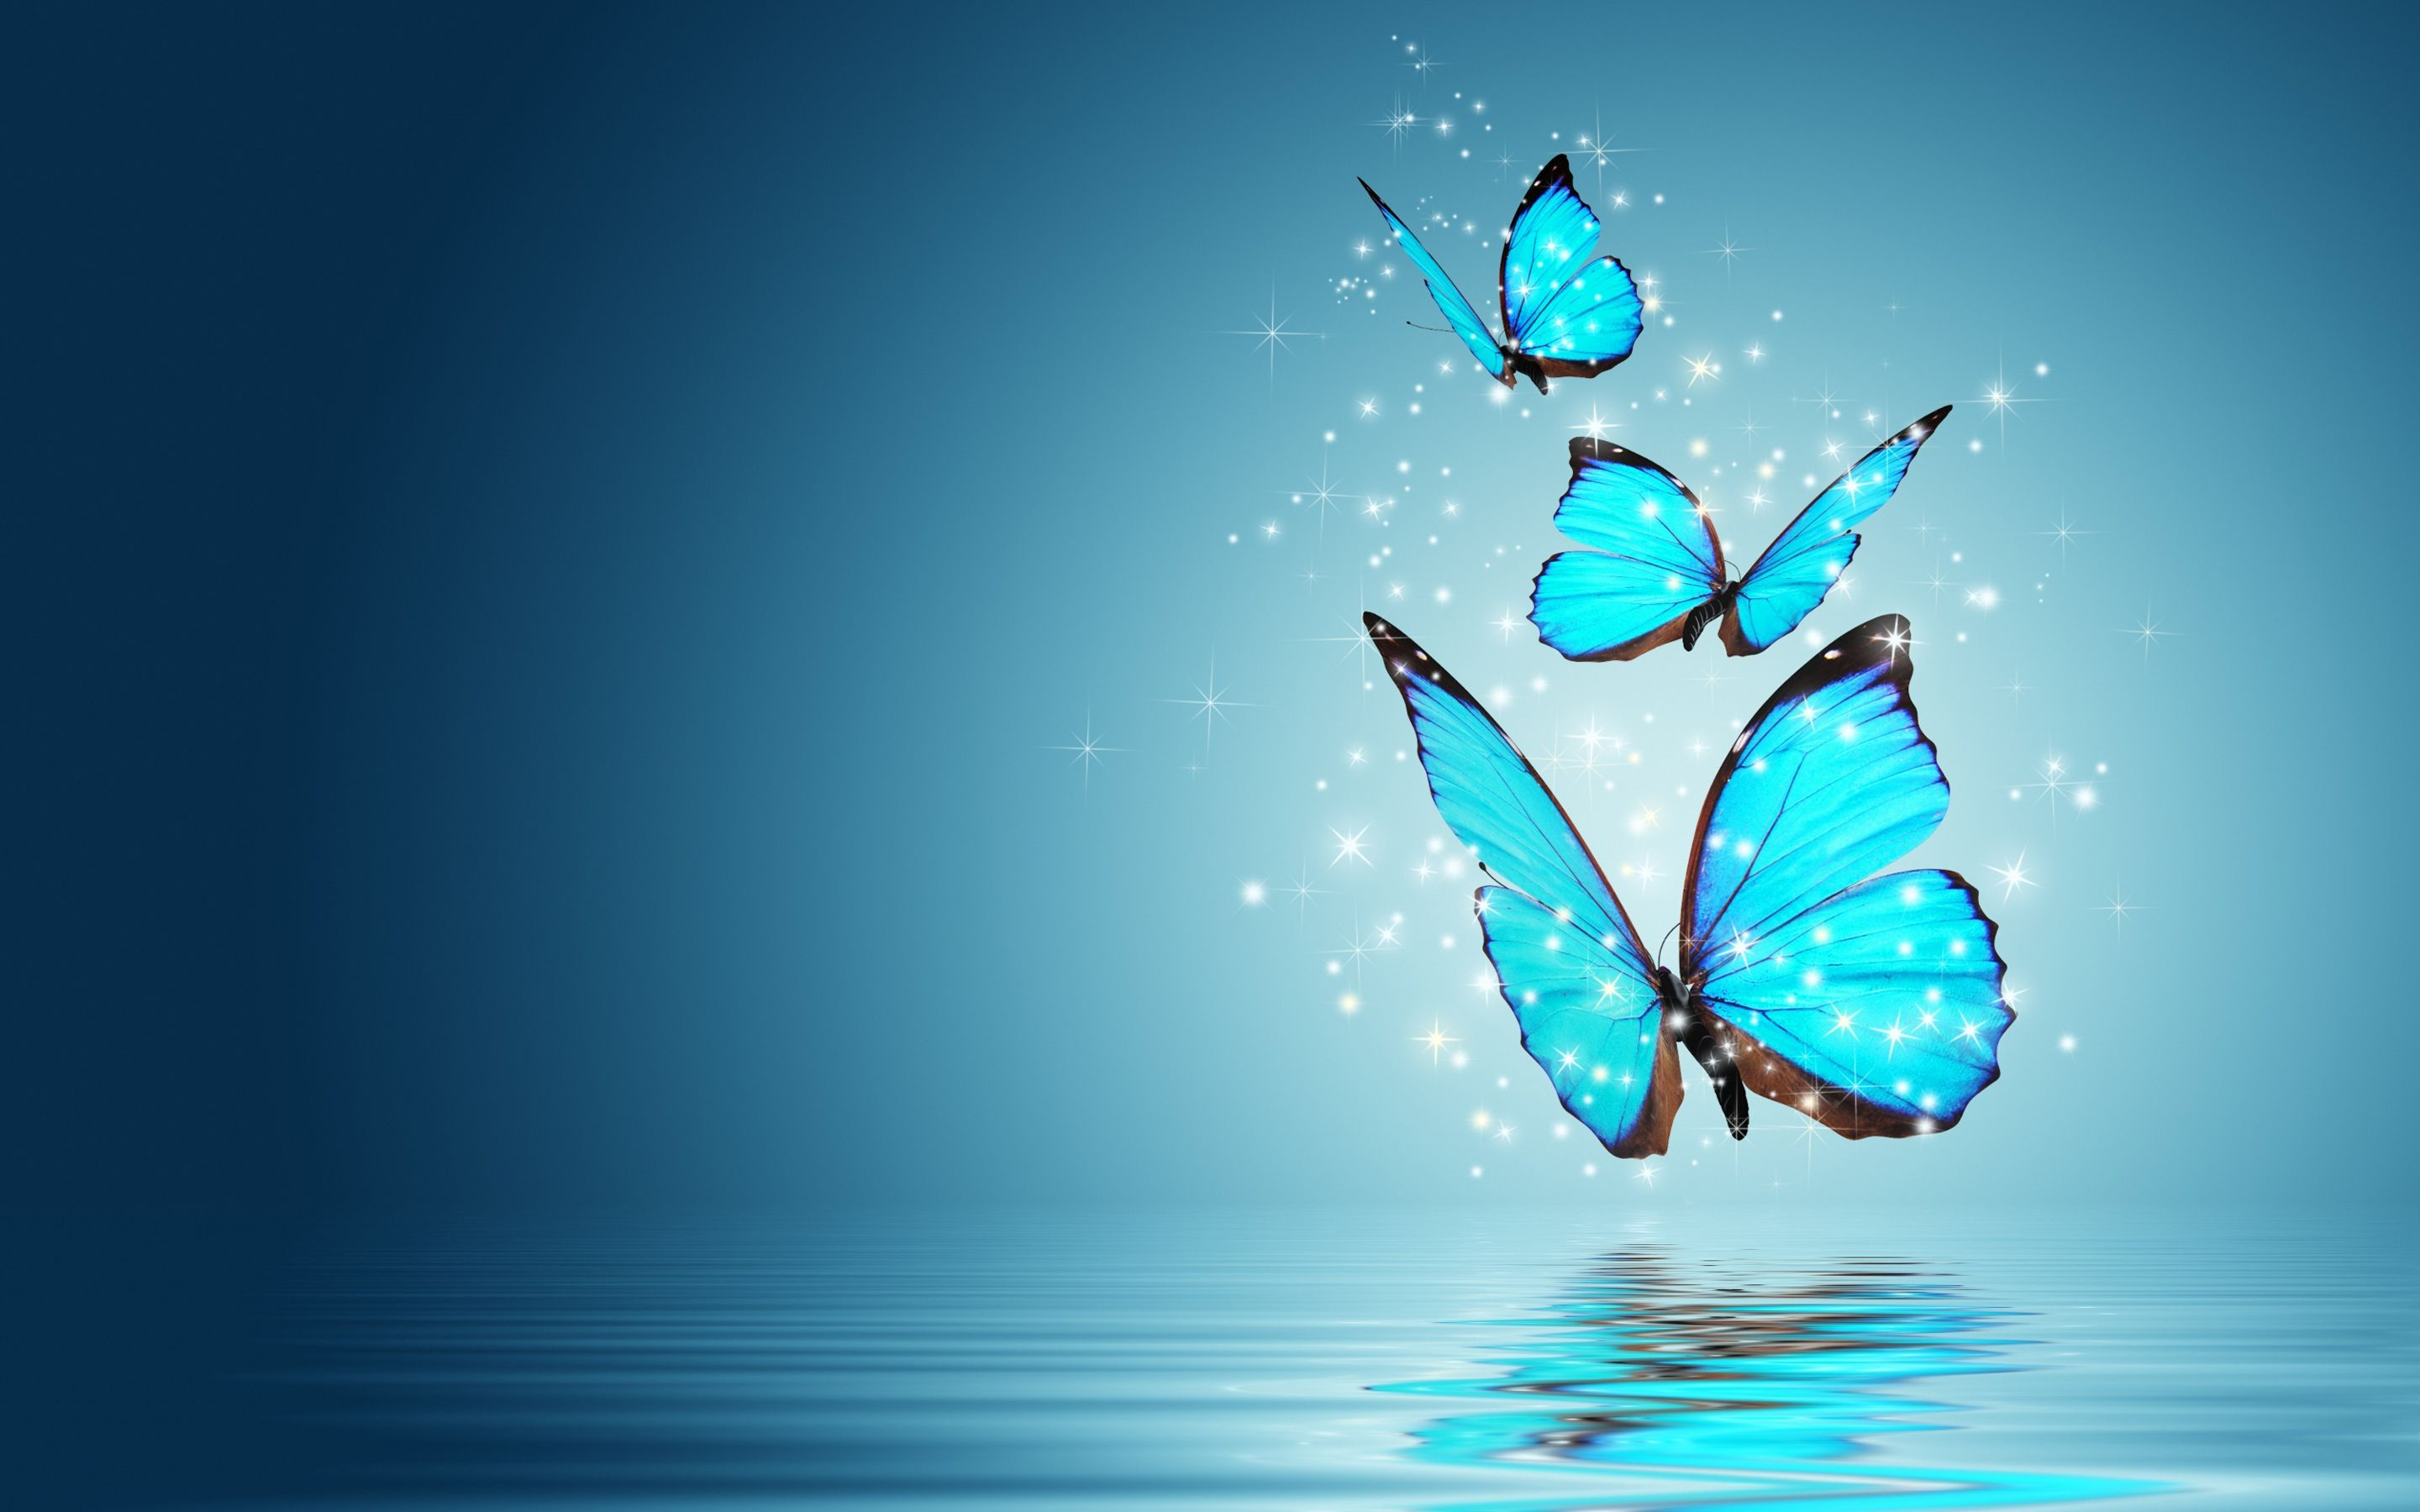 Blue Butterfly Water Reflection The best wallpaper backgrounds 2880x1800